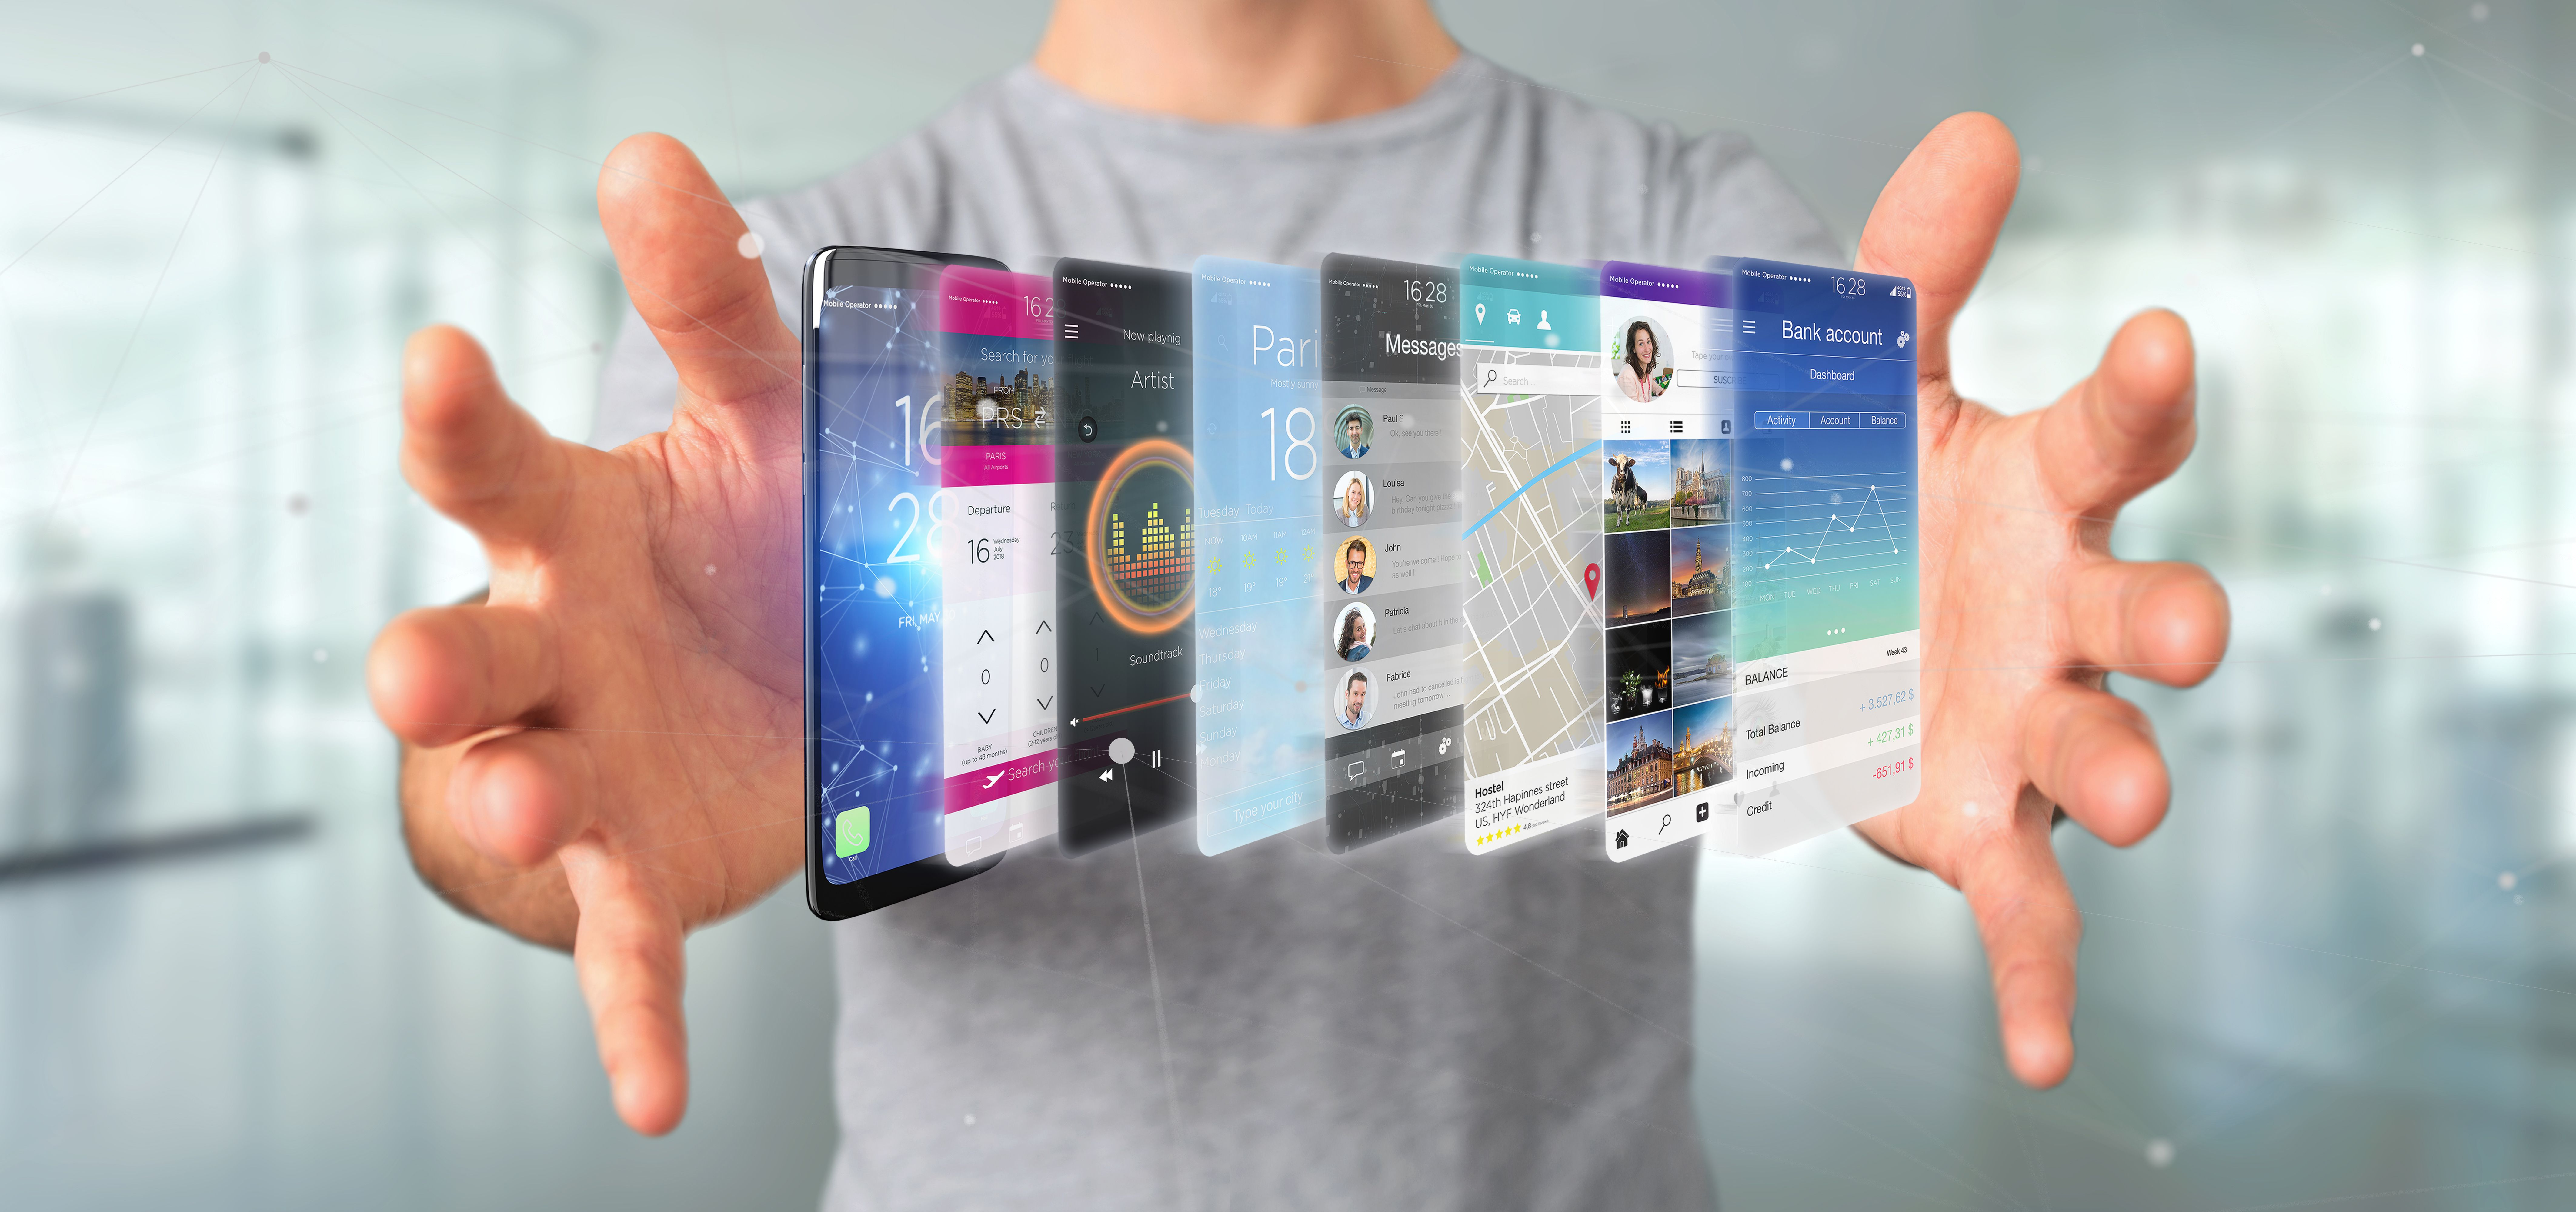 Web applications are the future for mobile